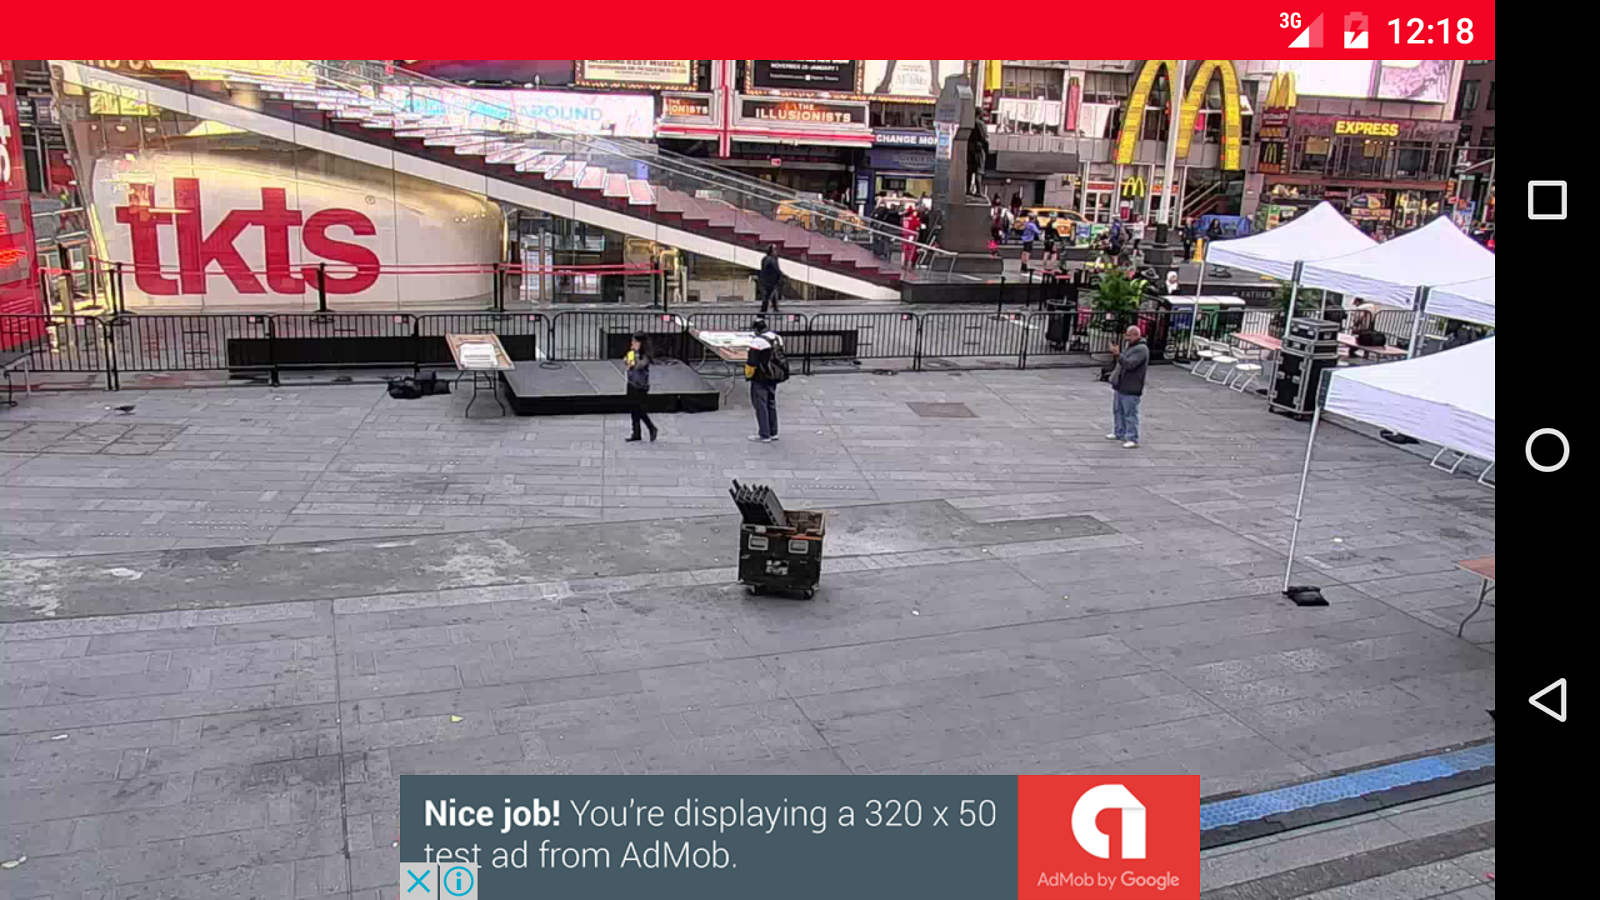 Usa live web cameras hd android apps on google play for Live camera website